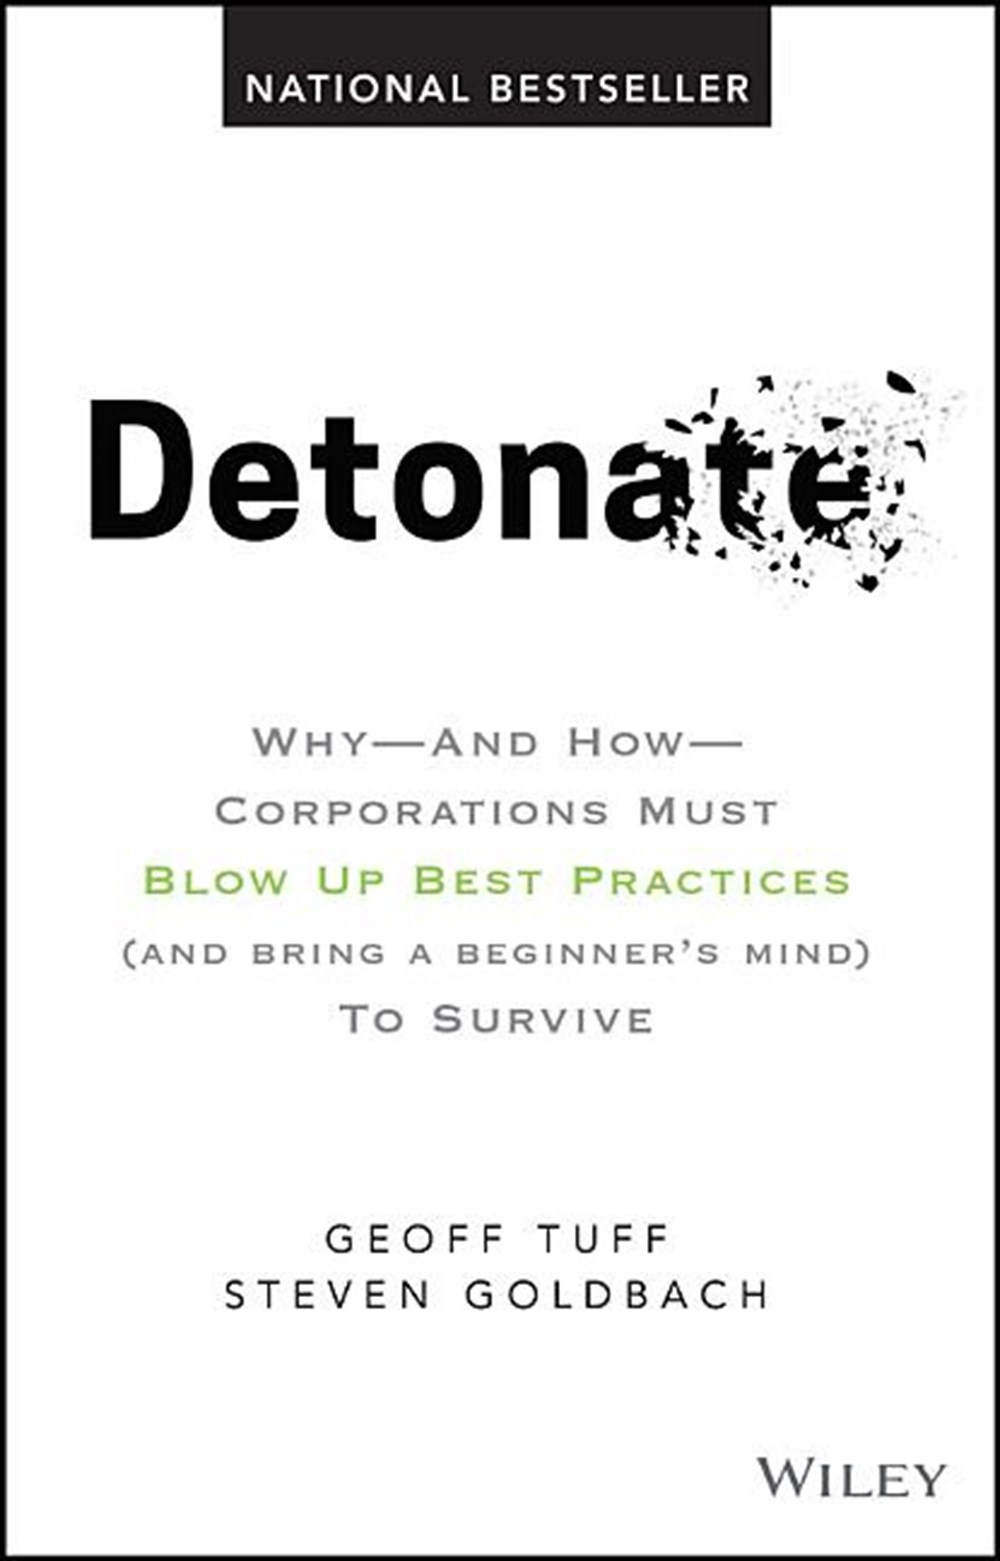 Detonate Why - And How - Corporations Must Blow Up Best Practices (and Bring a Beginner's Mind) to S